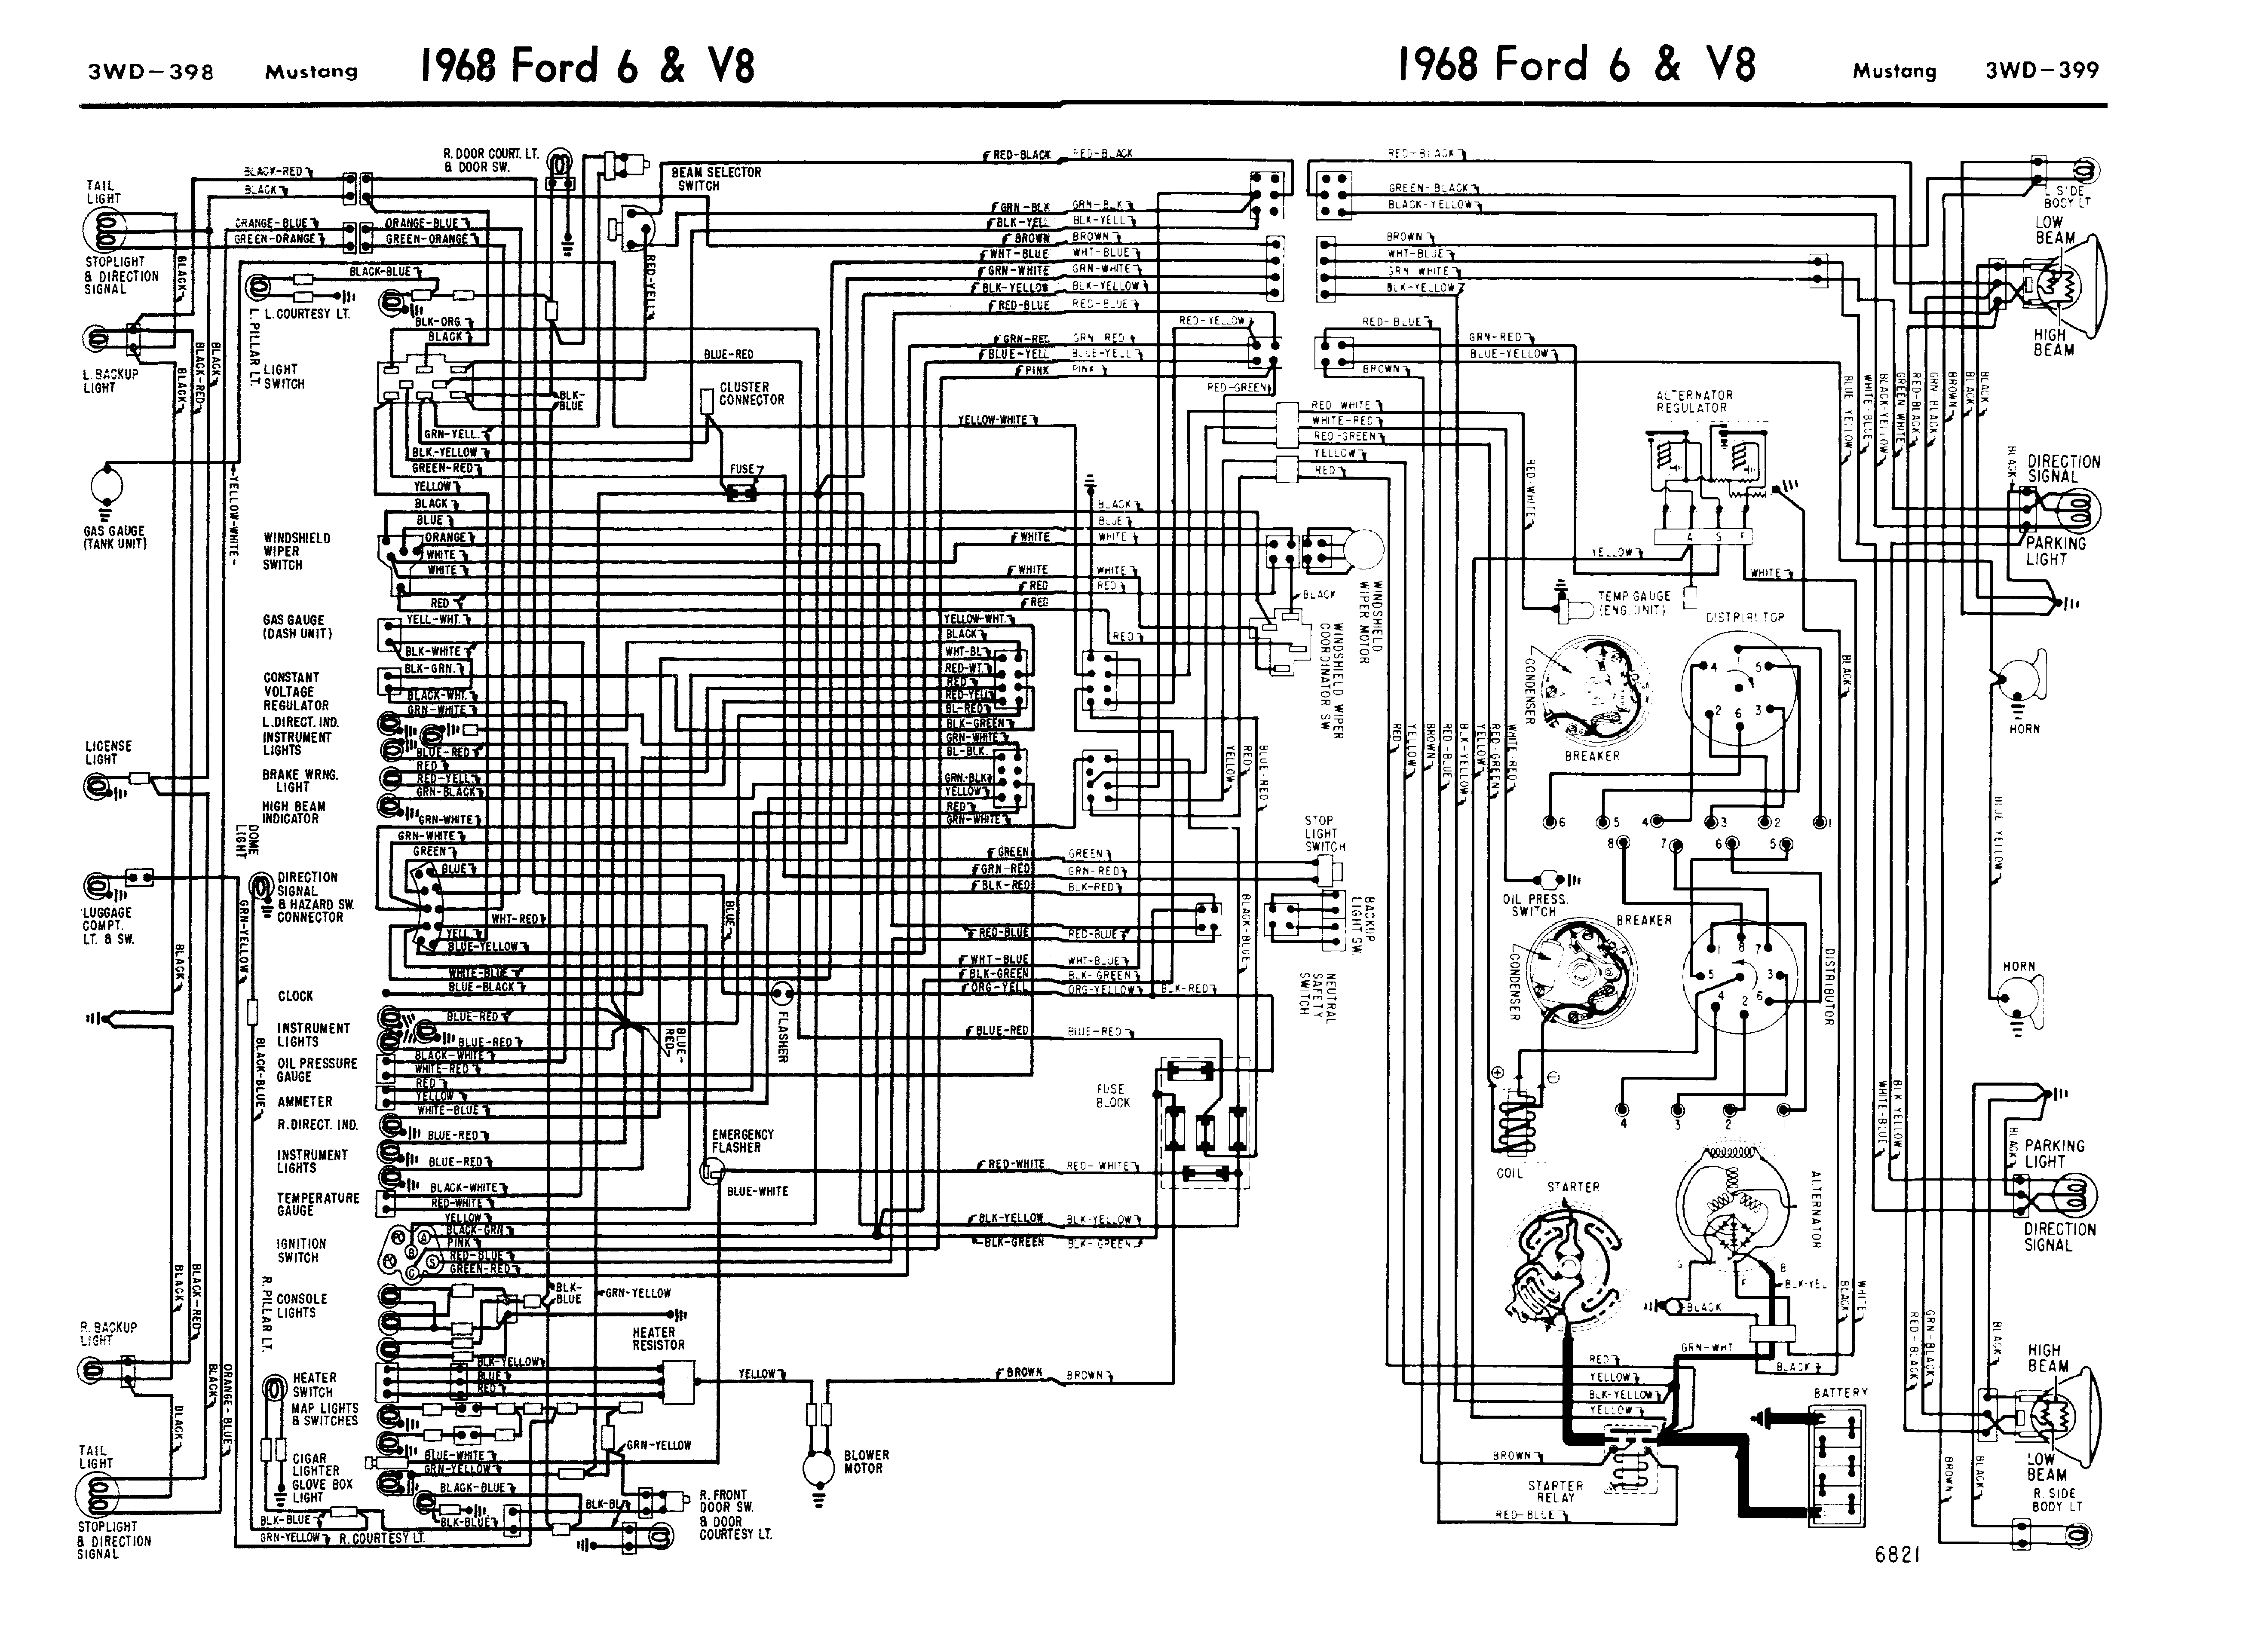 ford explorer subwoofer wiring diagram ford automotive wiring ford explorer subwoofer wiring diagram ford automotive wiring 2005 ford mustang engine diagram further ford